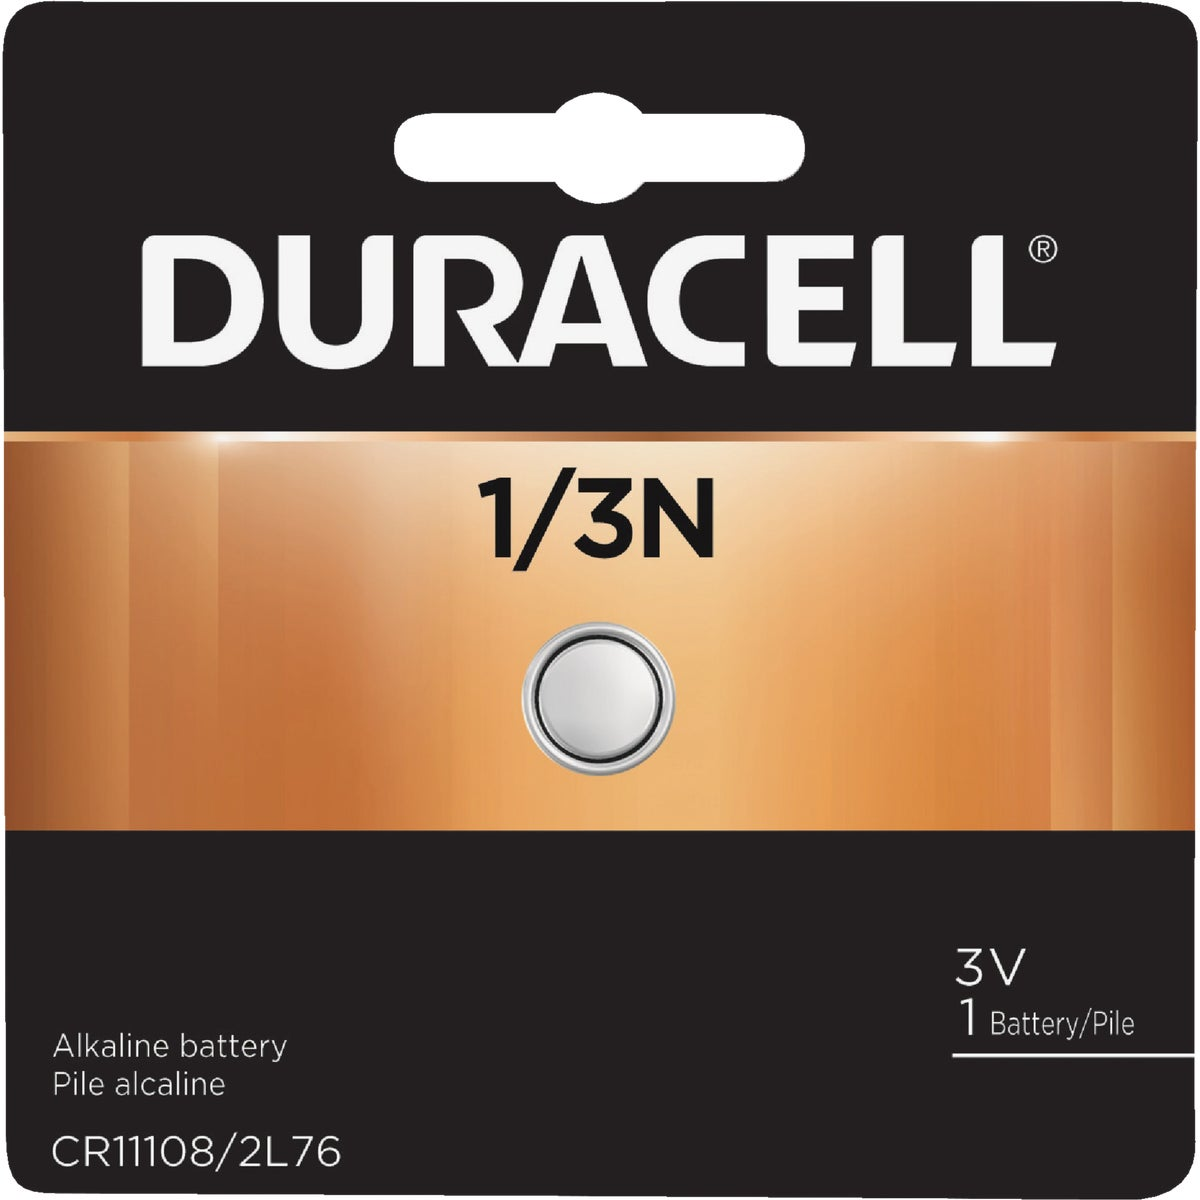 DL1/3 3V PHOTO BATTERY - 29987 by P & G  Duracell